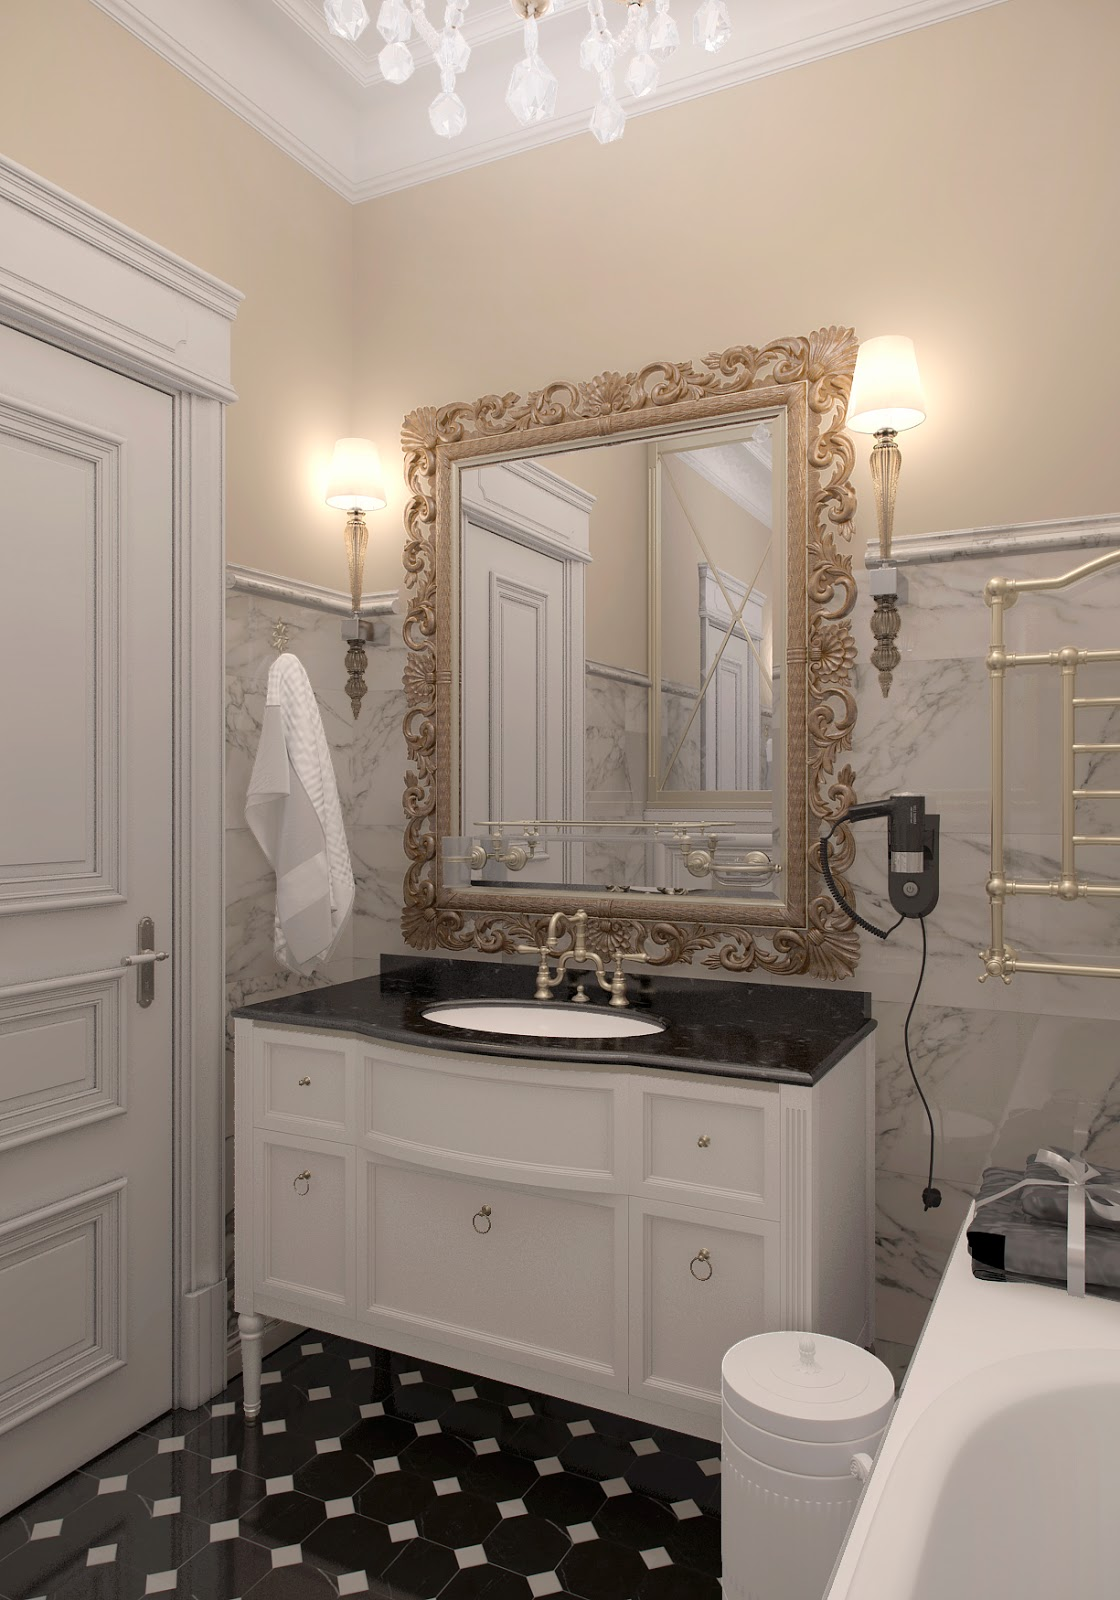 Darya girina interior design march 2015 - You Can View Additional Detailed Information About Restoration Interior Design And Decoration Of High Grade Hotel Apartments And Public Zones Of The